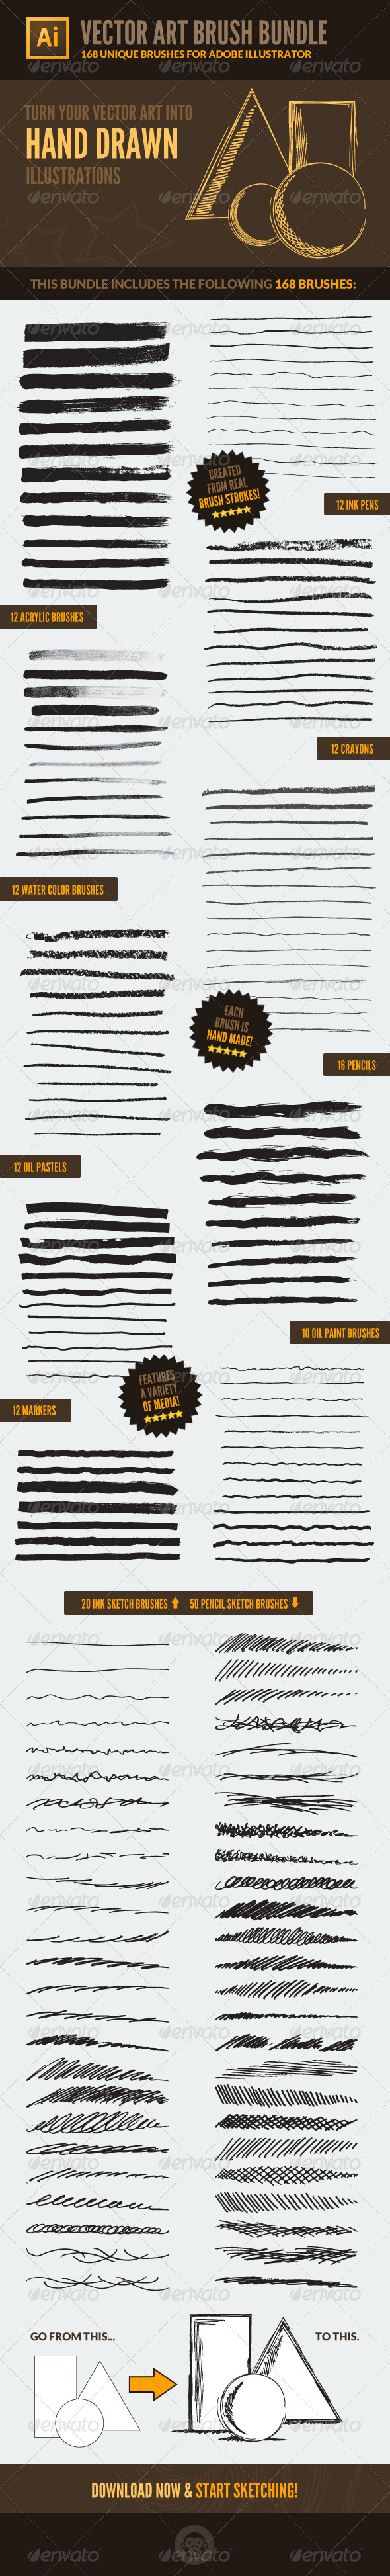 168 Vector Art Brushes - Bundle - Artistic Brushes